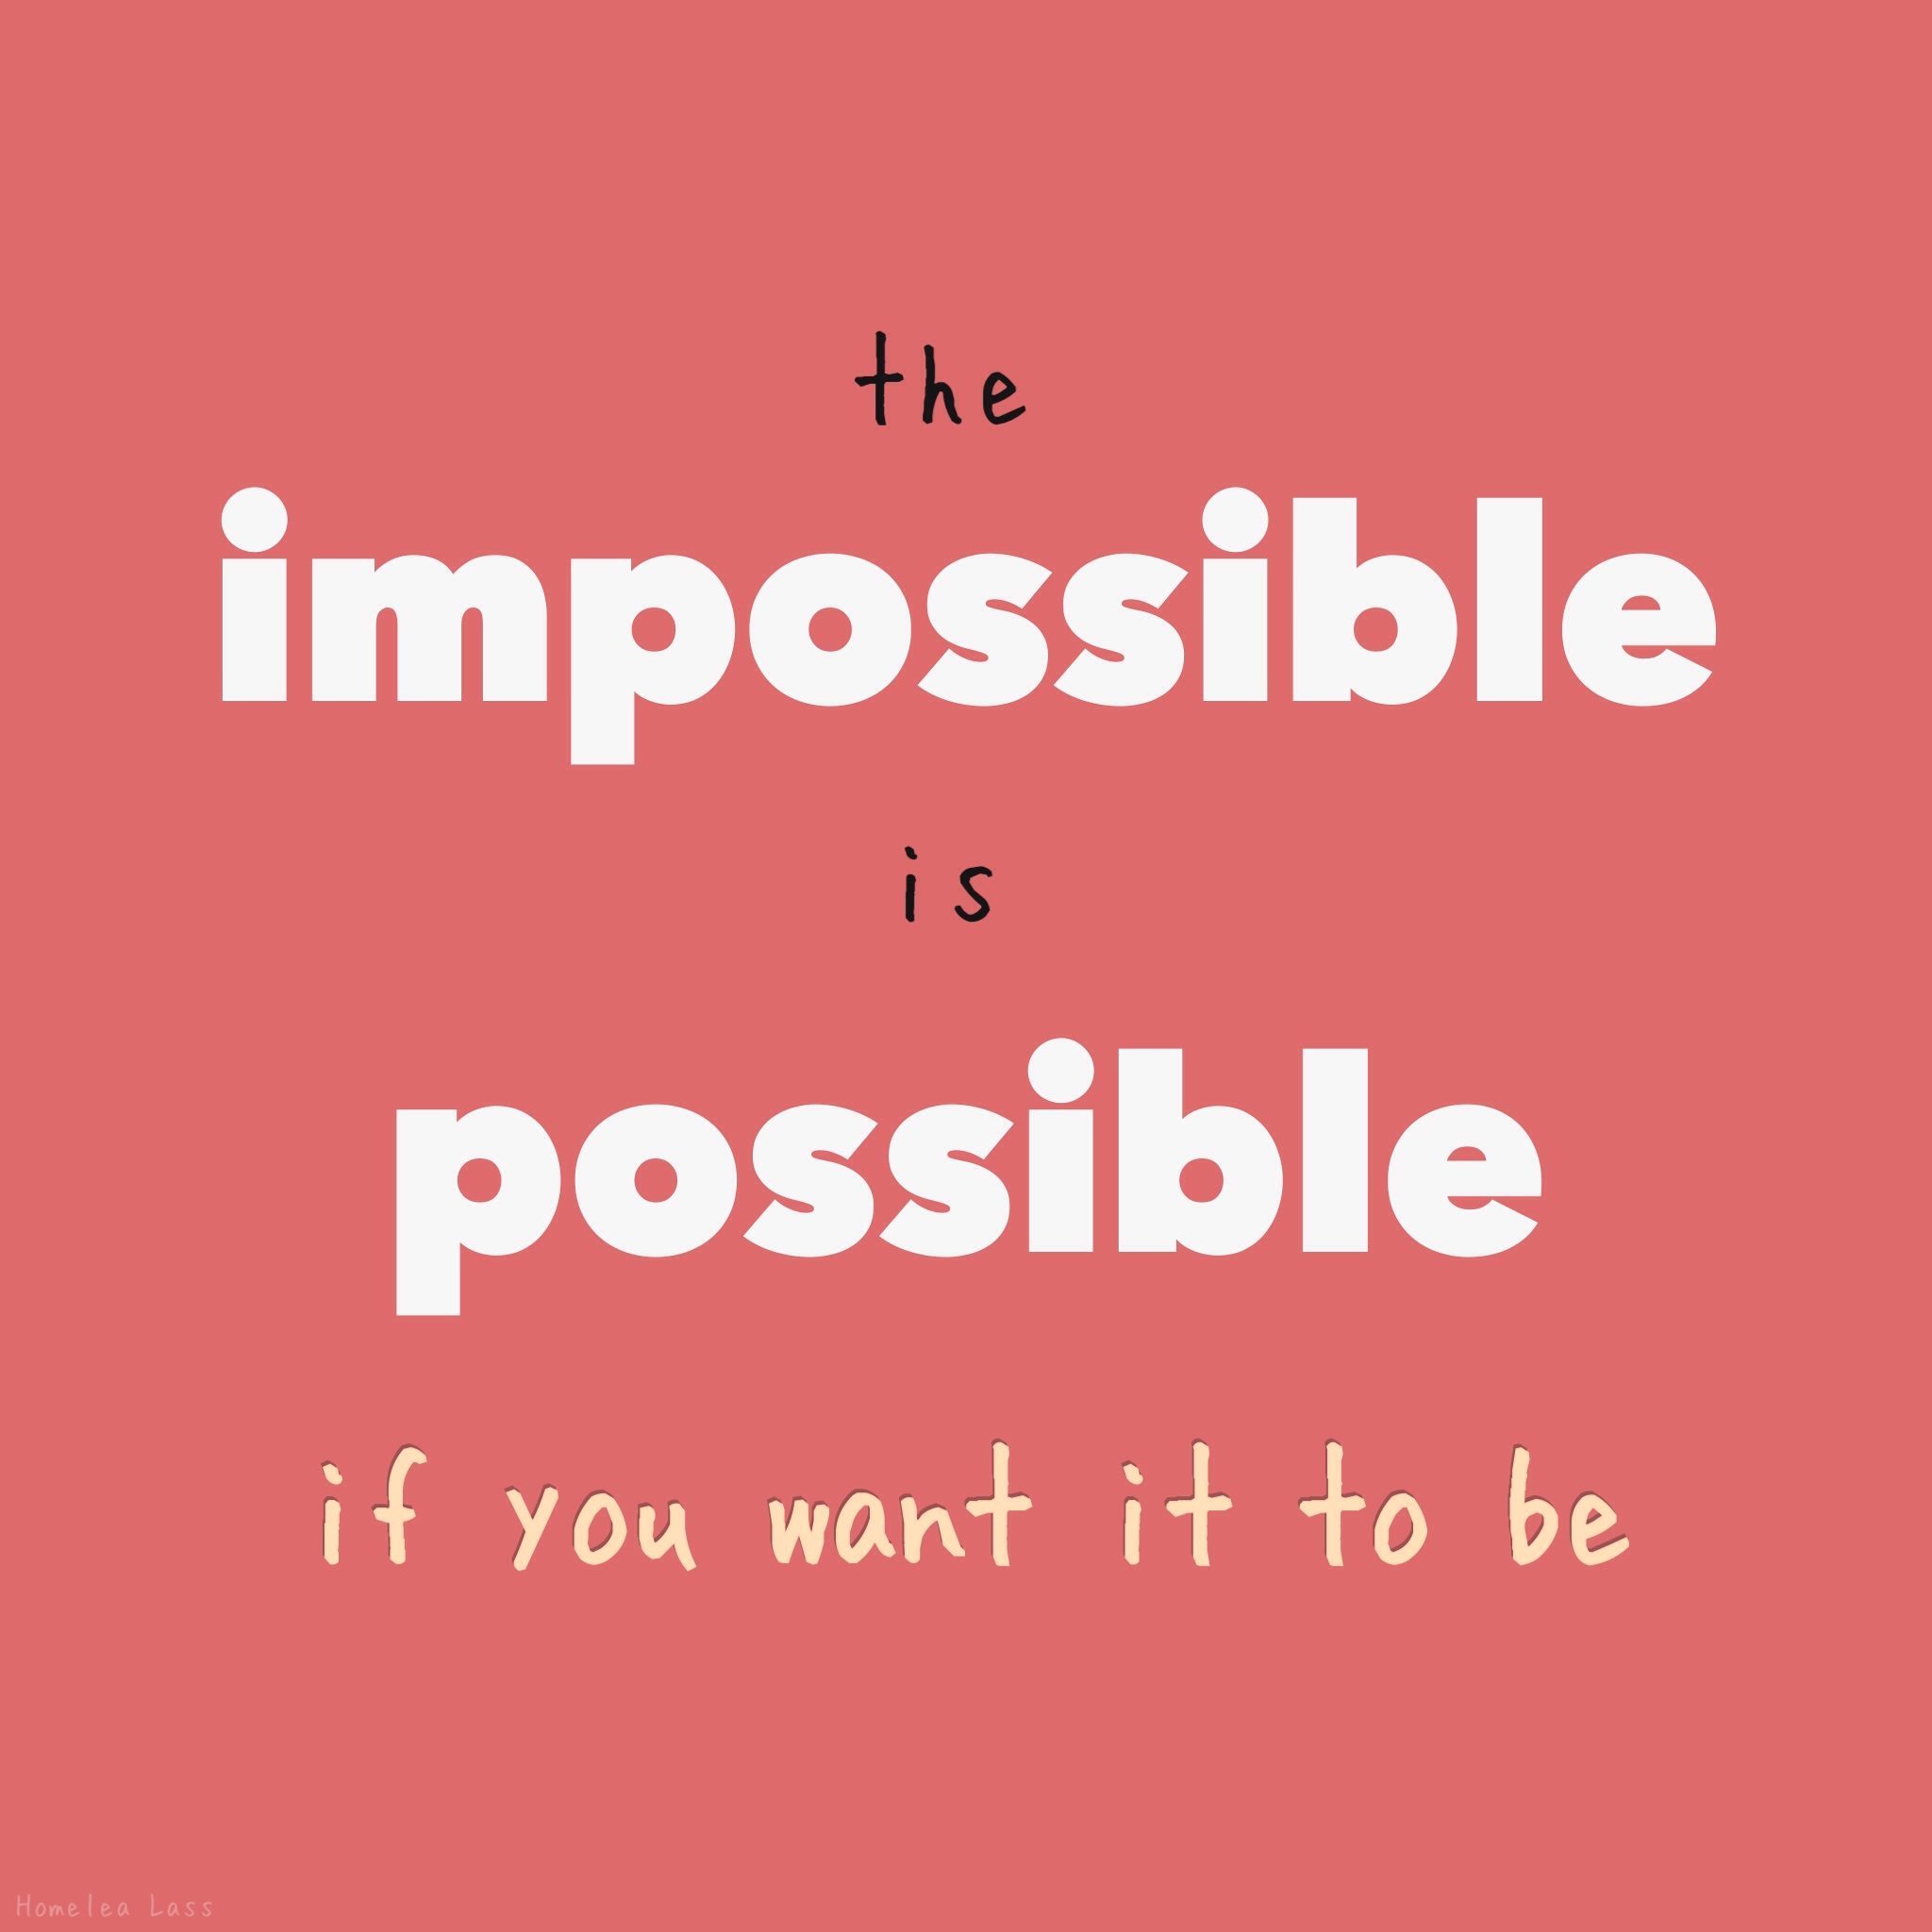 Impossible list, help make impossible possible! Check it out!